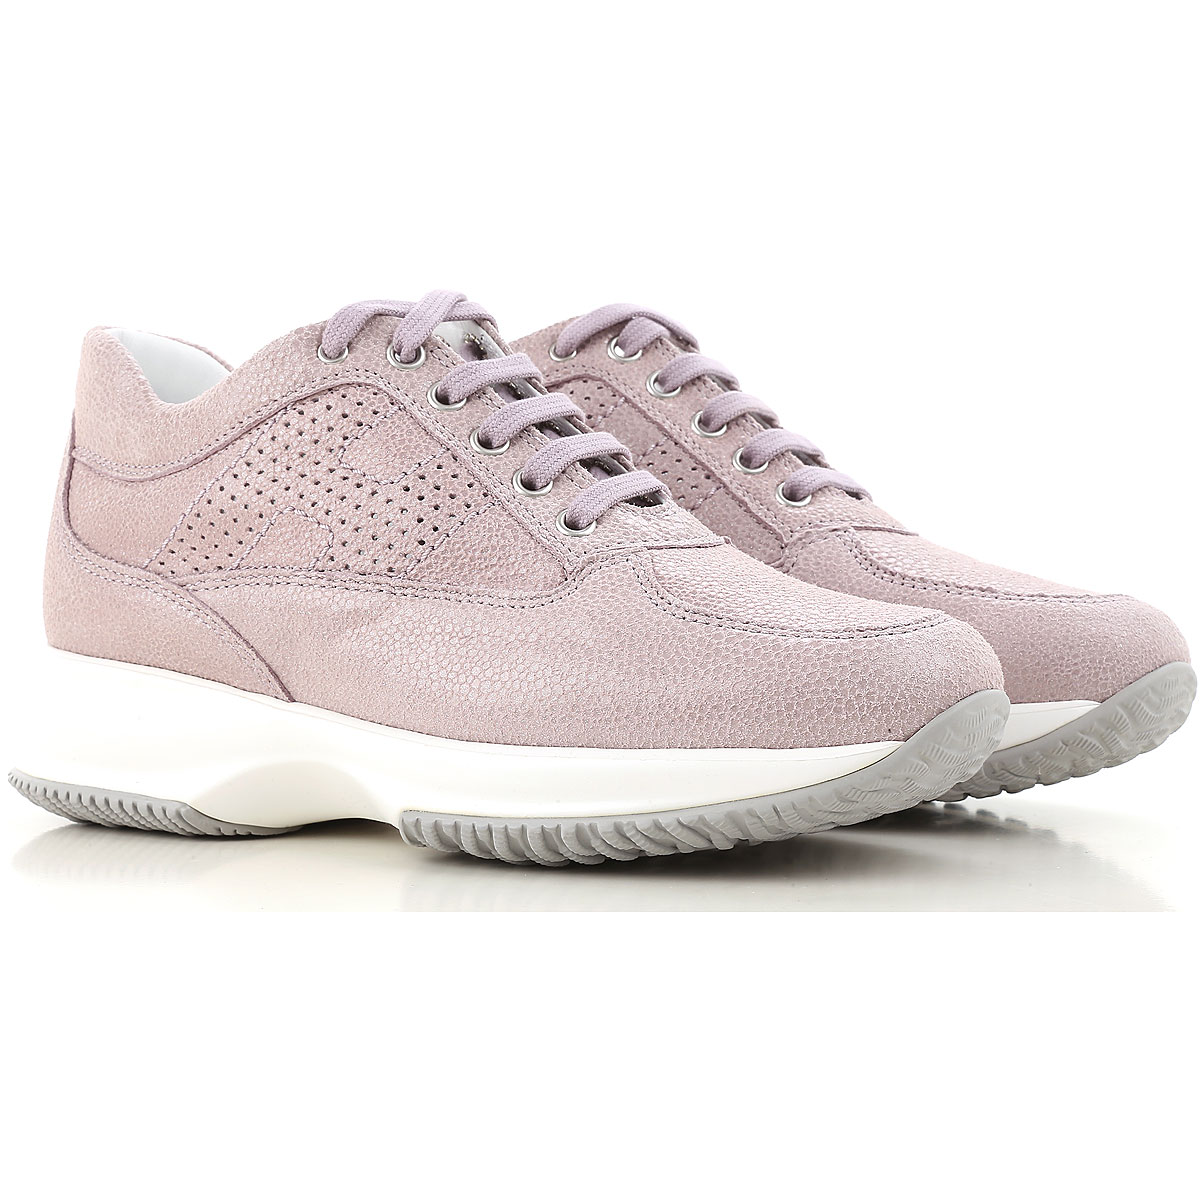 Sneakers for Women On Sale, White, Leather, 2017, US 7.5 (EU 37.5) Hogan